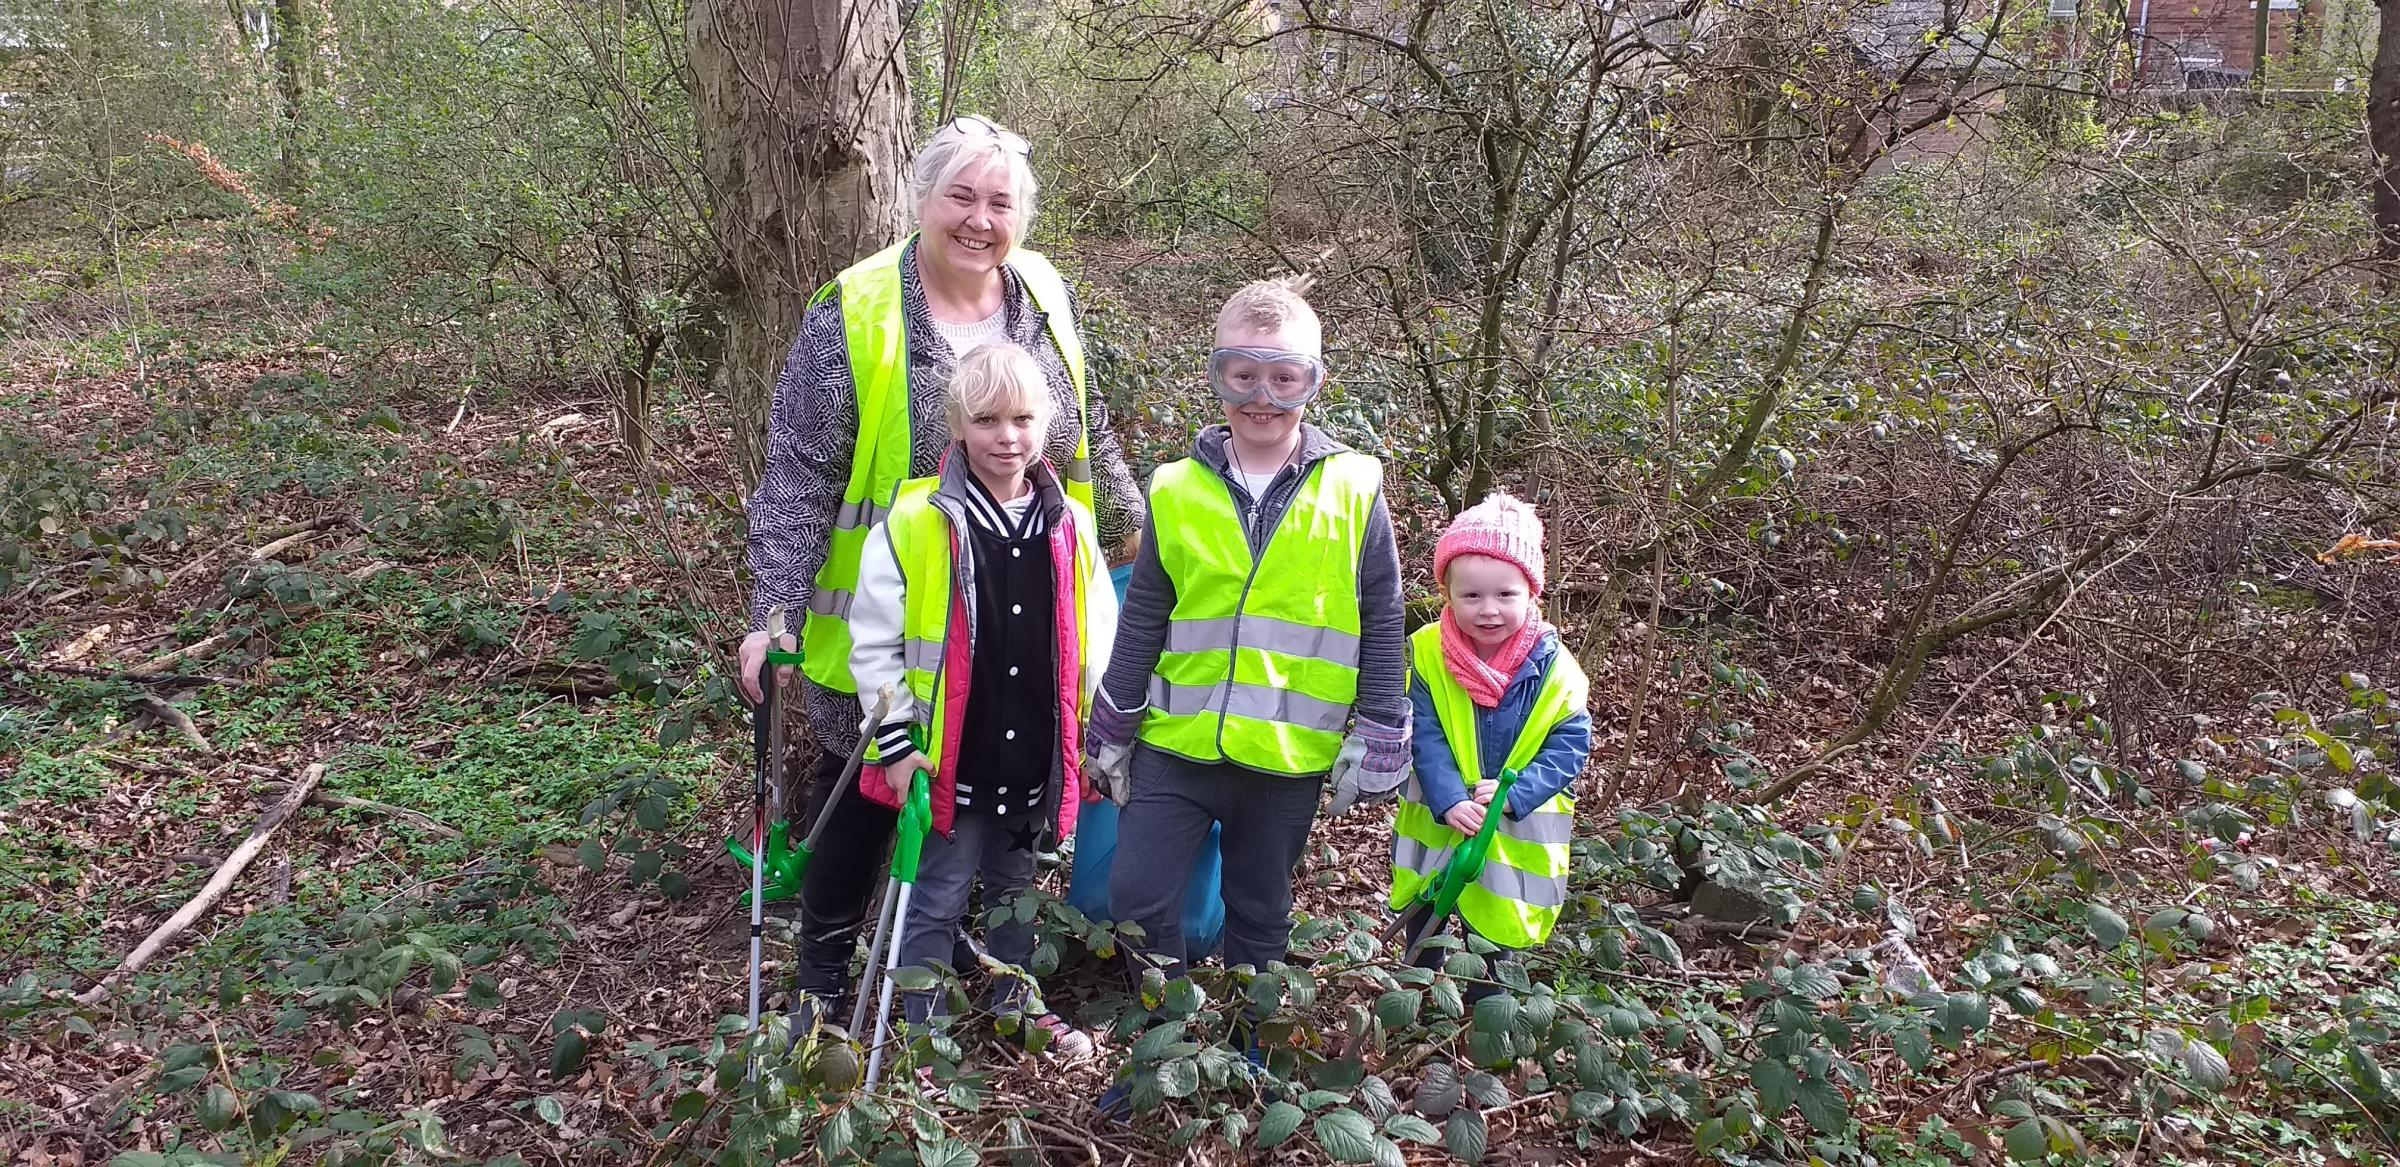 COMMUNITY ACTION: Members of Tanfield Lea Countryside Group have collected 63 bags of rubbish with a litter pick. Picture shows Gillian Armstrong, with Ryley and Hannah Armstrong, and Poppy Errington.